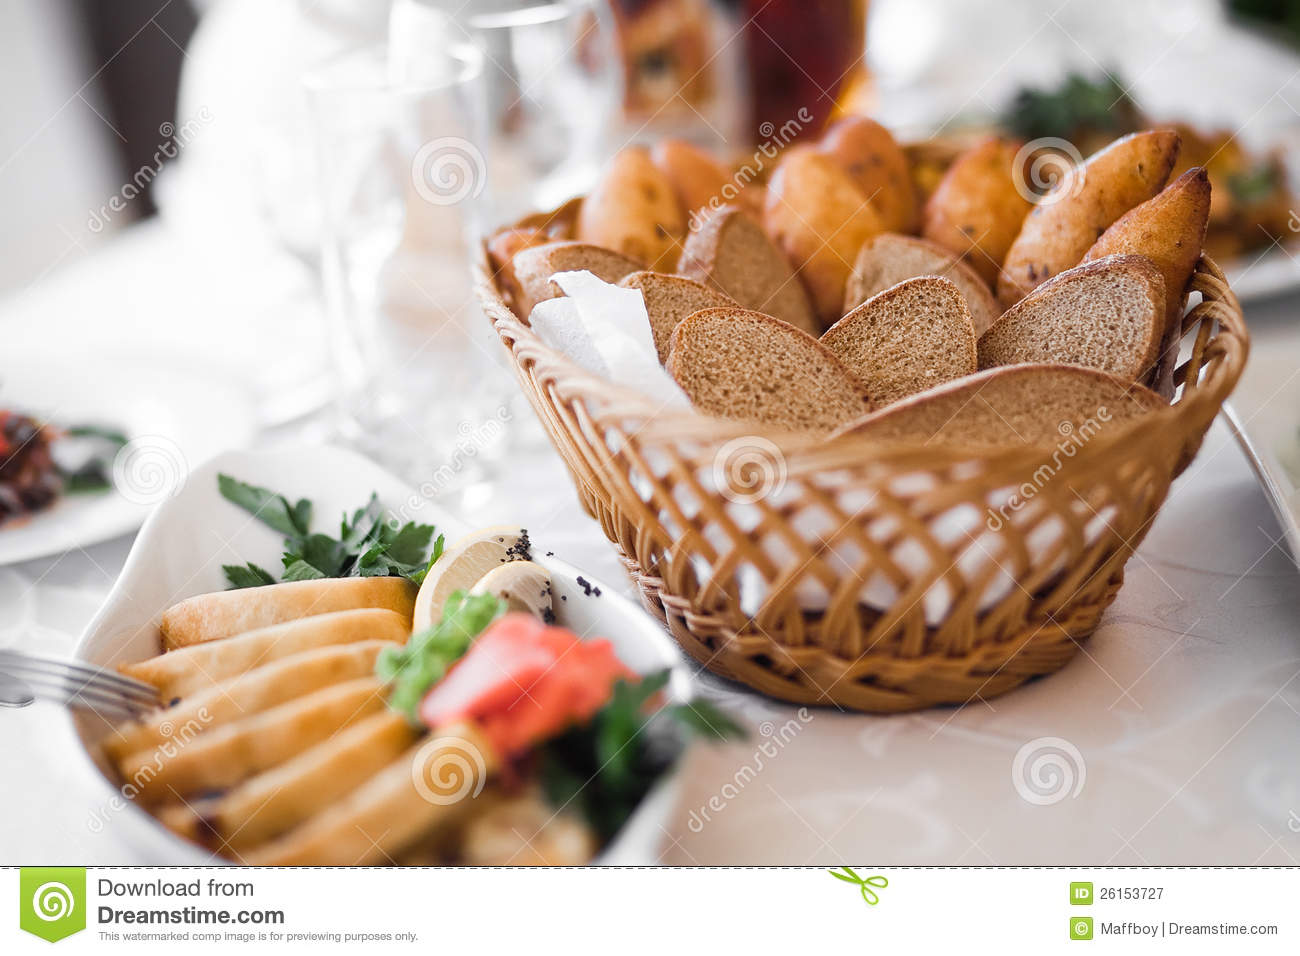 Bread Basket Royalty Free Stock Photography - Image: 26153727